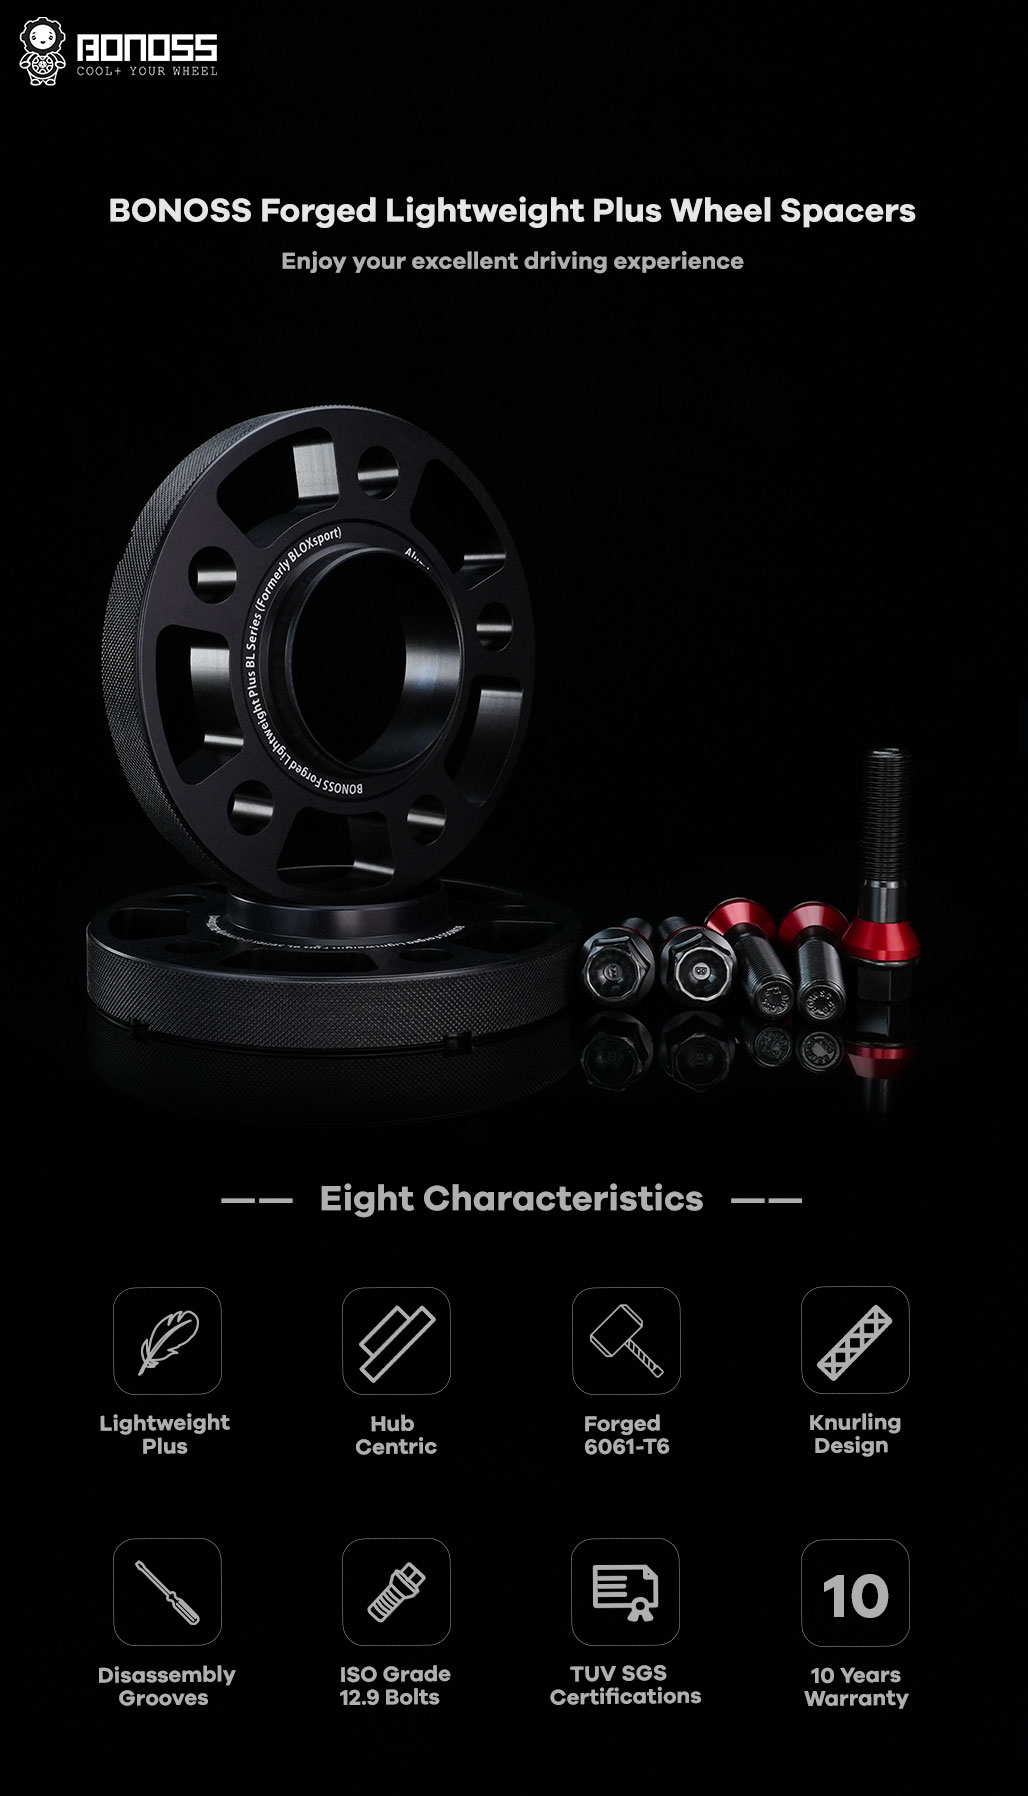 BONOSS Forged Lightweight Plus Hubcentric Wheel Spacers 5 Lug Wheel Adapters Wheel ET Spacers AL6061-T6